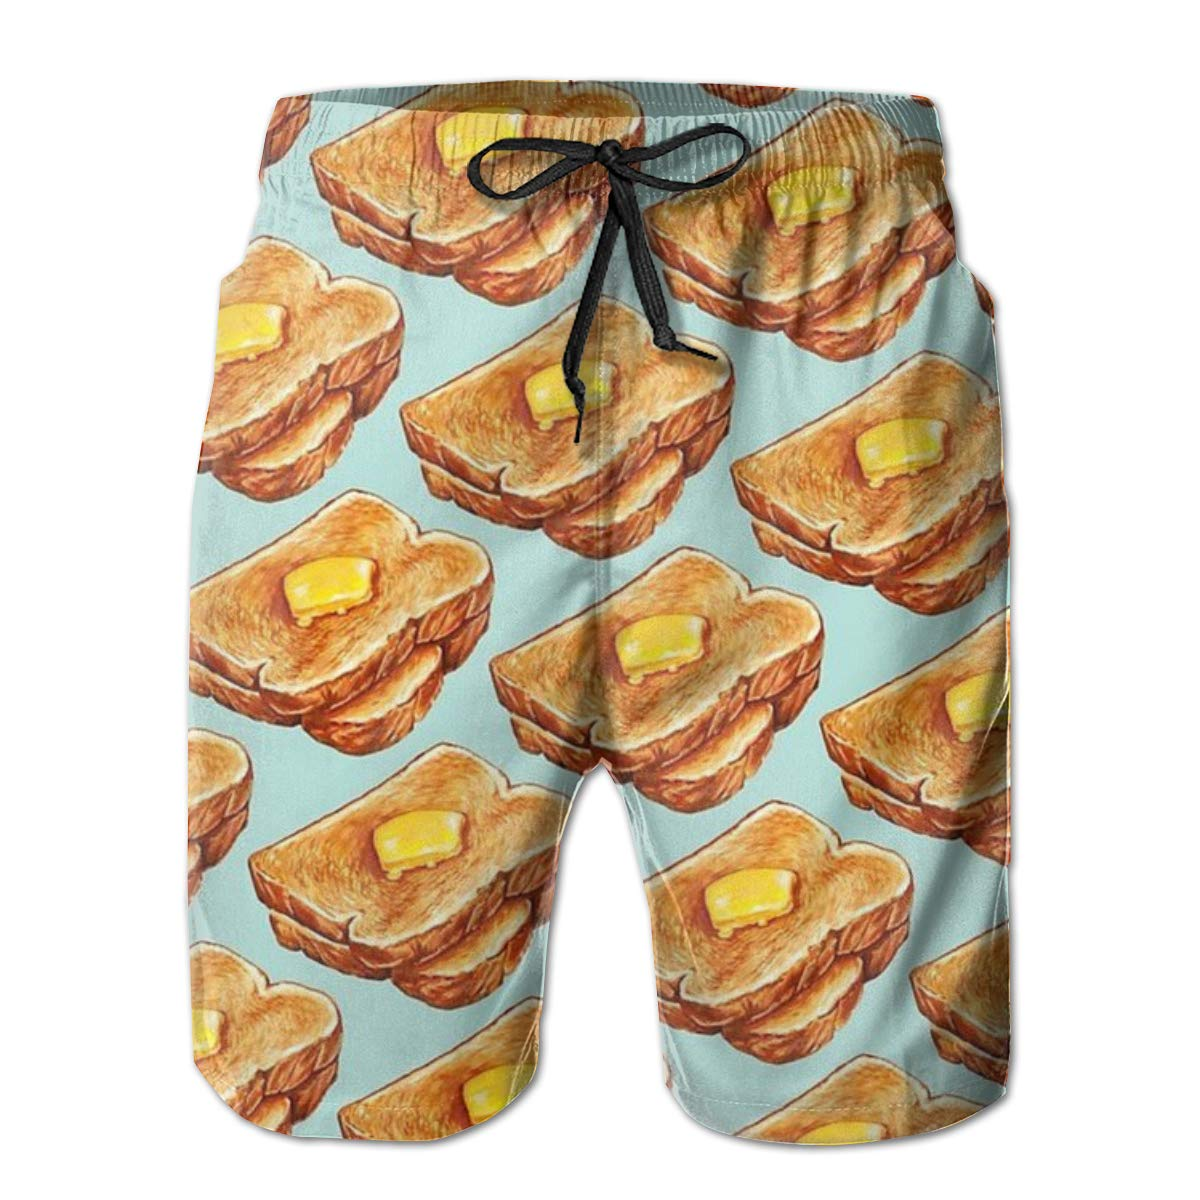 Wexzss Buttered Toast Funny Summer Quick-Drying Swim Trunks Beach Shorts Cargo Shorts